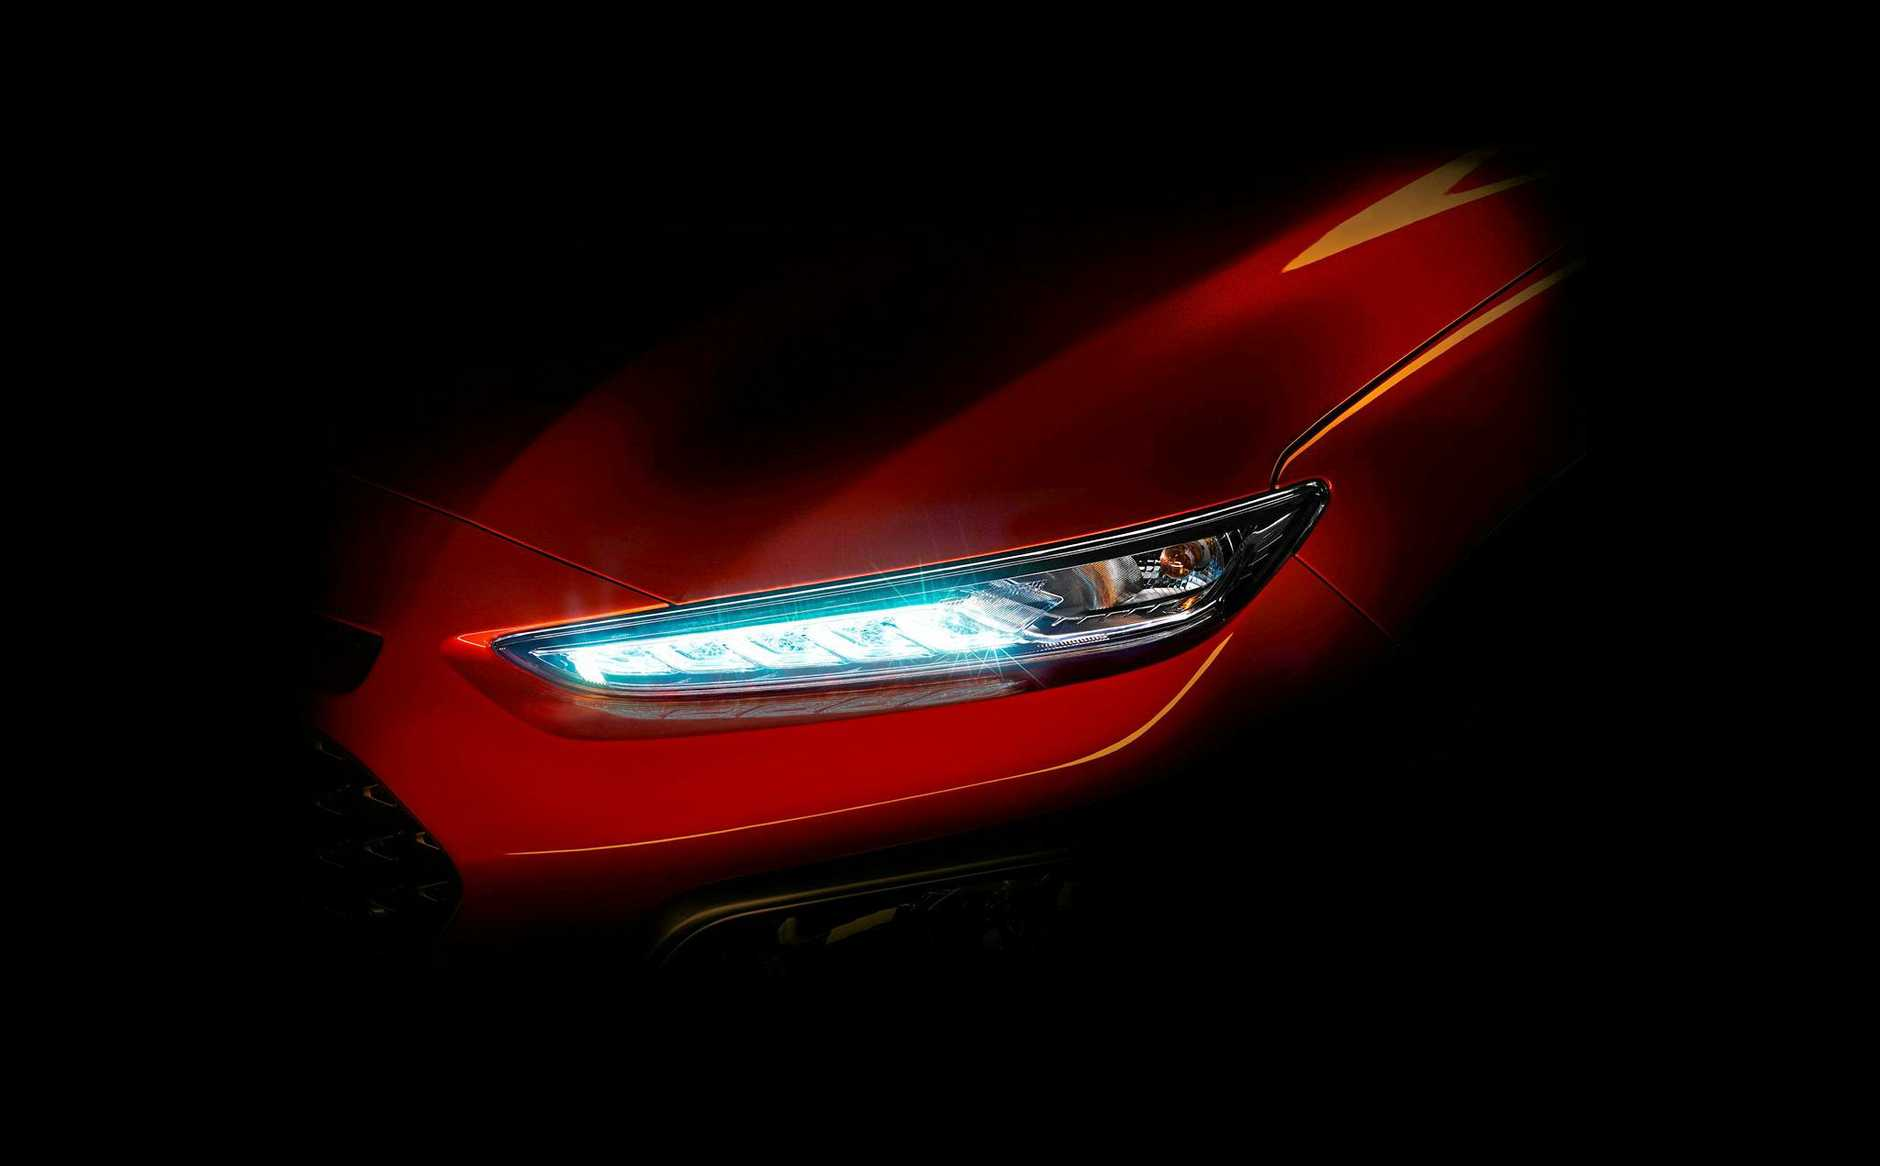 A teaser images of the Hyundai Kona small SUV due to arrive in Australia in the second half of 2017.